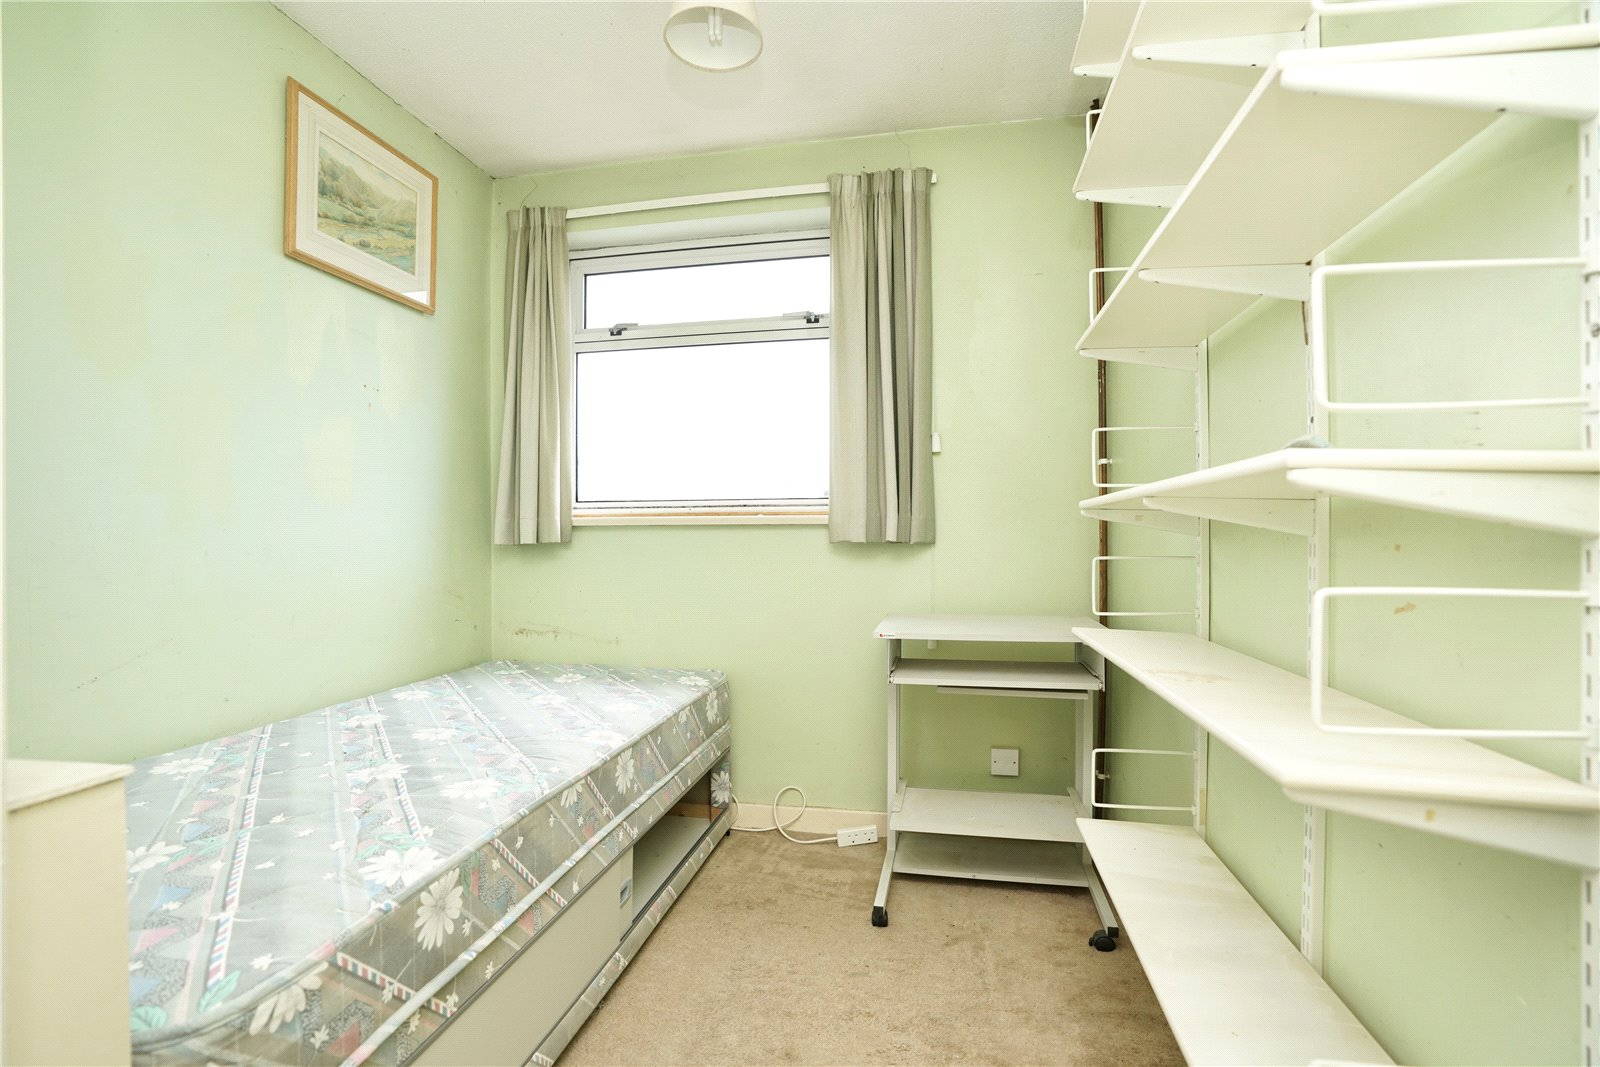 3 bed house for sale in Kenilworth Close, Eaton Socon  - Property Image 8